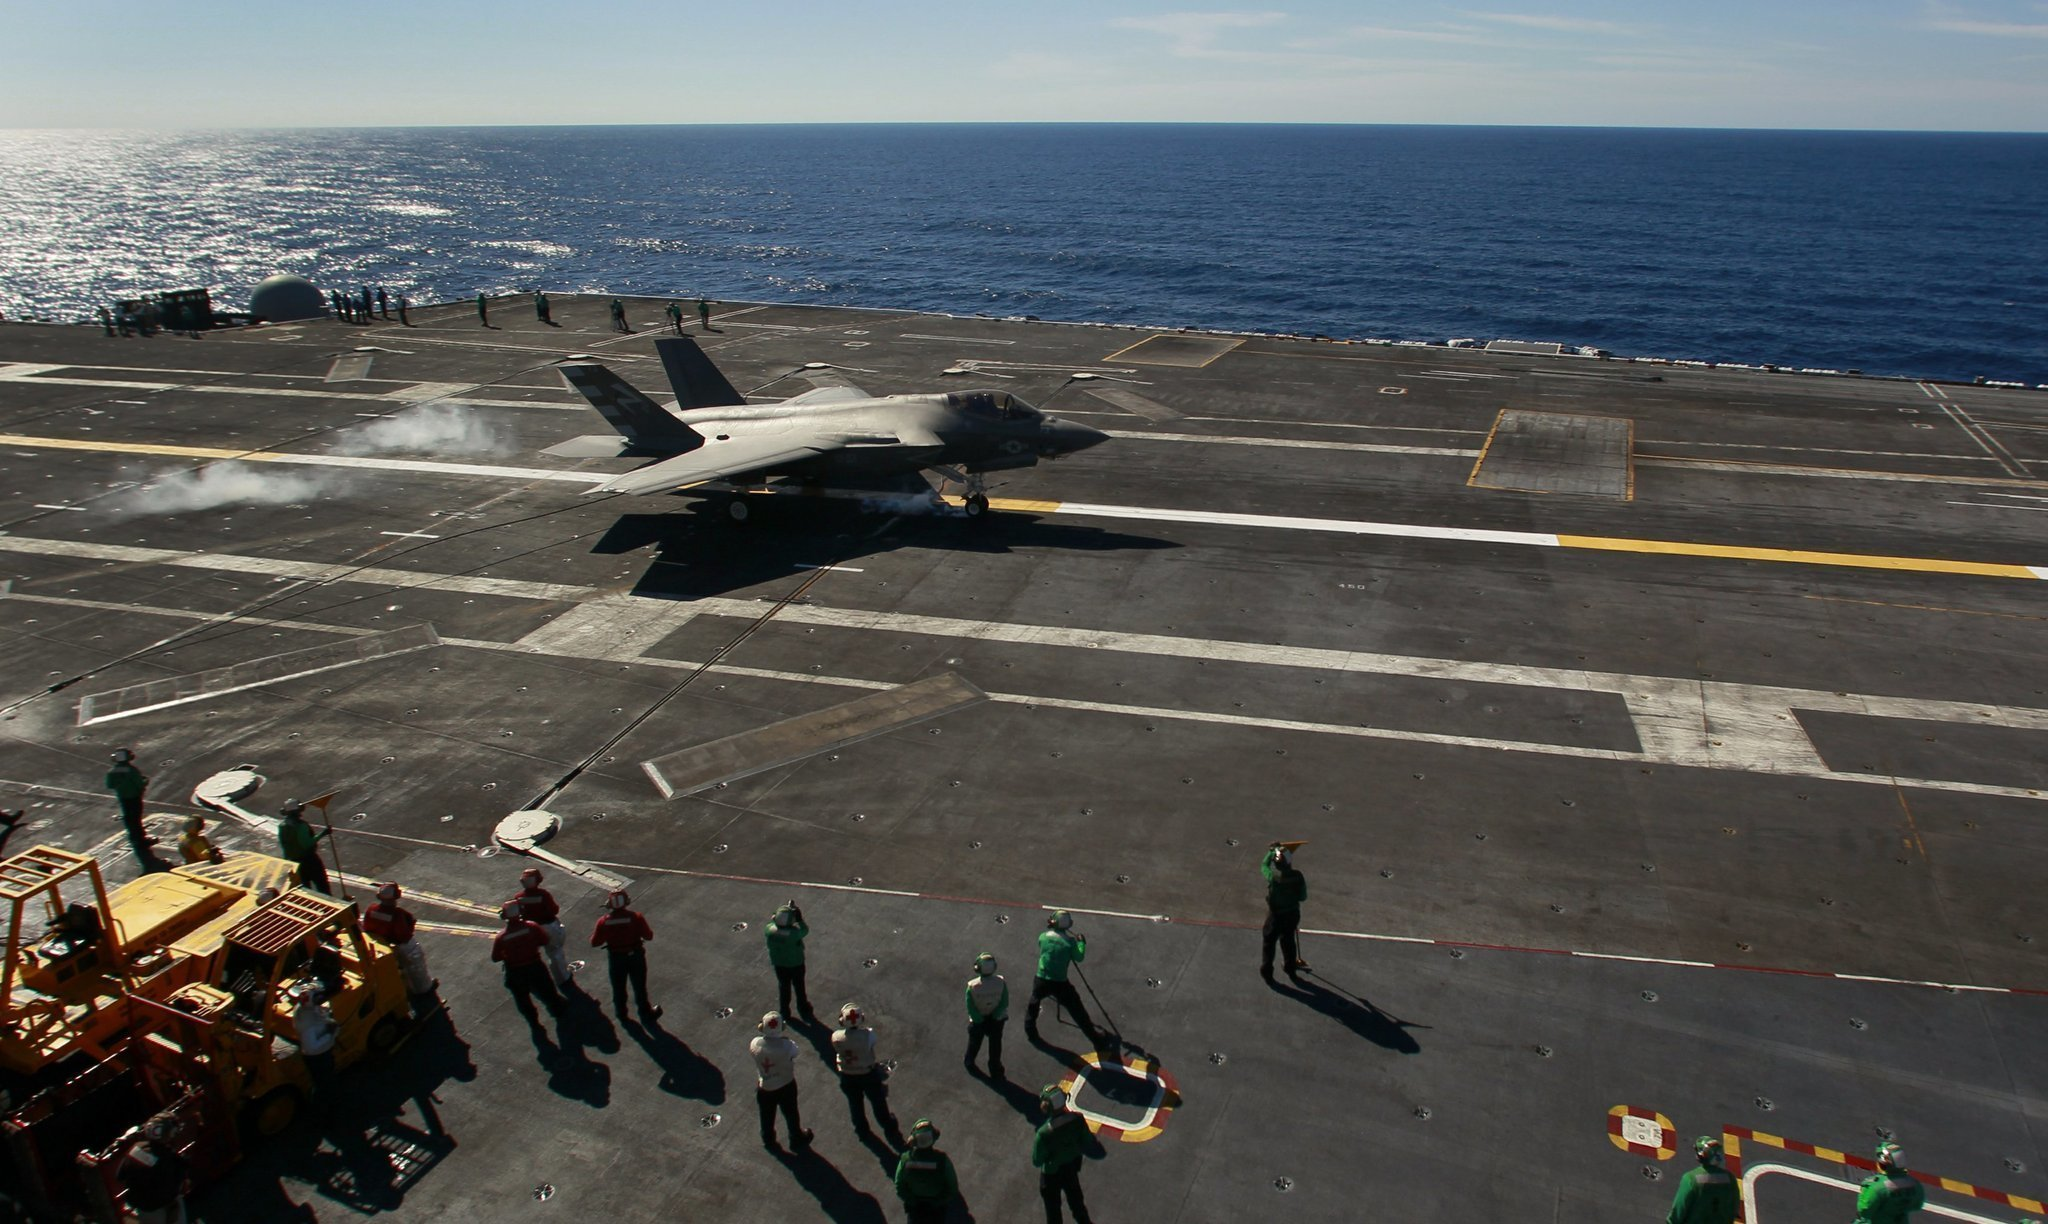 https://www.trbimg.com/img-57cfbb12/turbine/sdut-f35-nimitz-aircraft-carrier-test-landing-takeoff-2014nov03